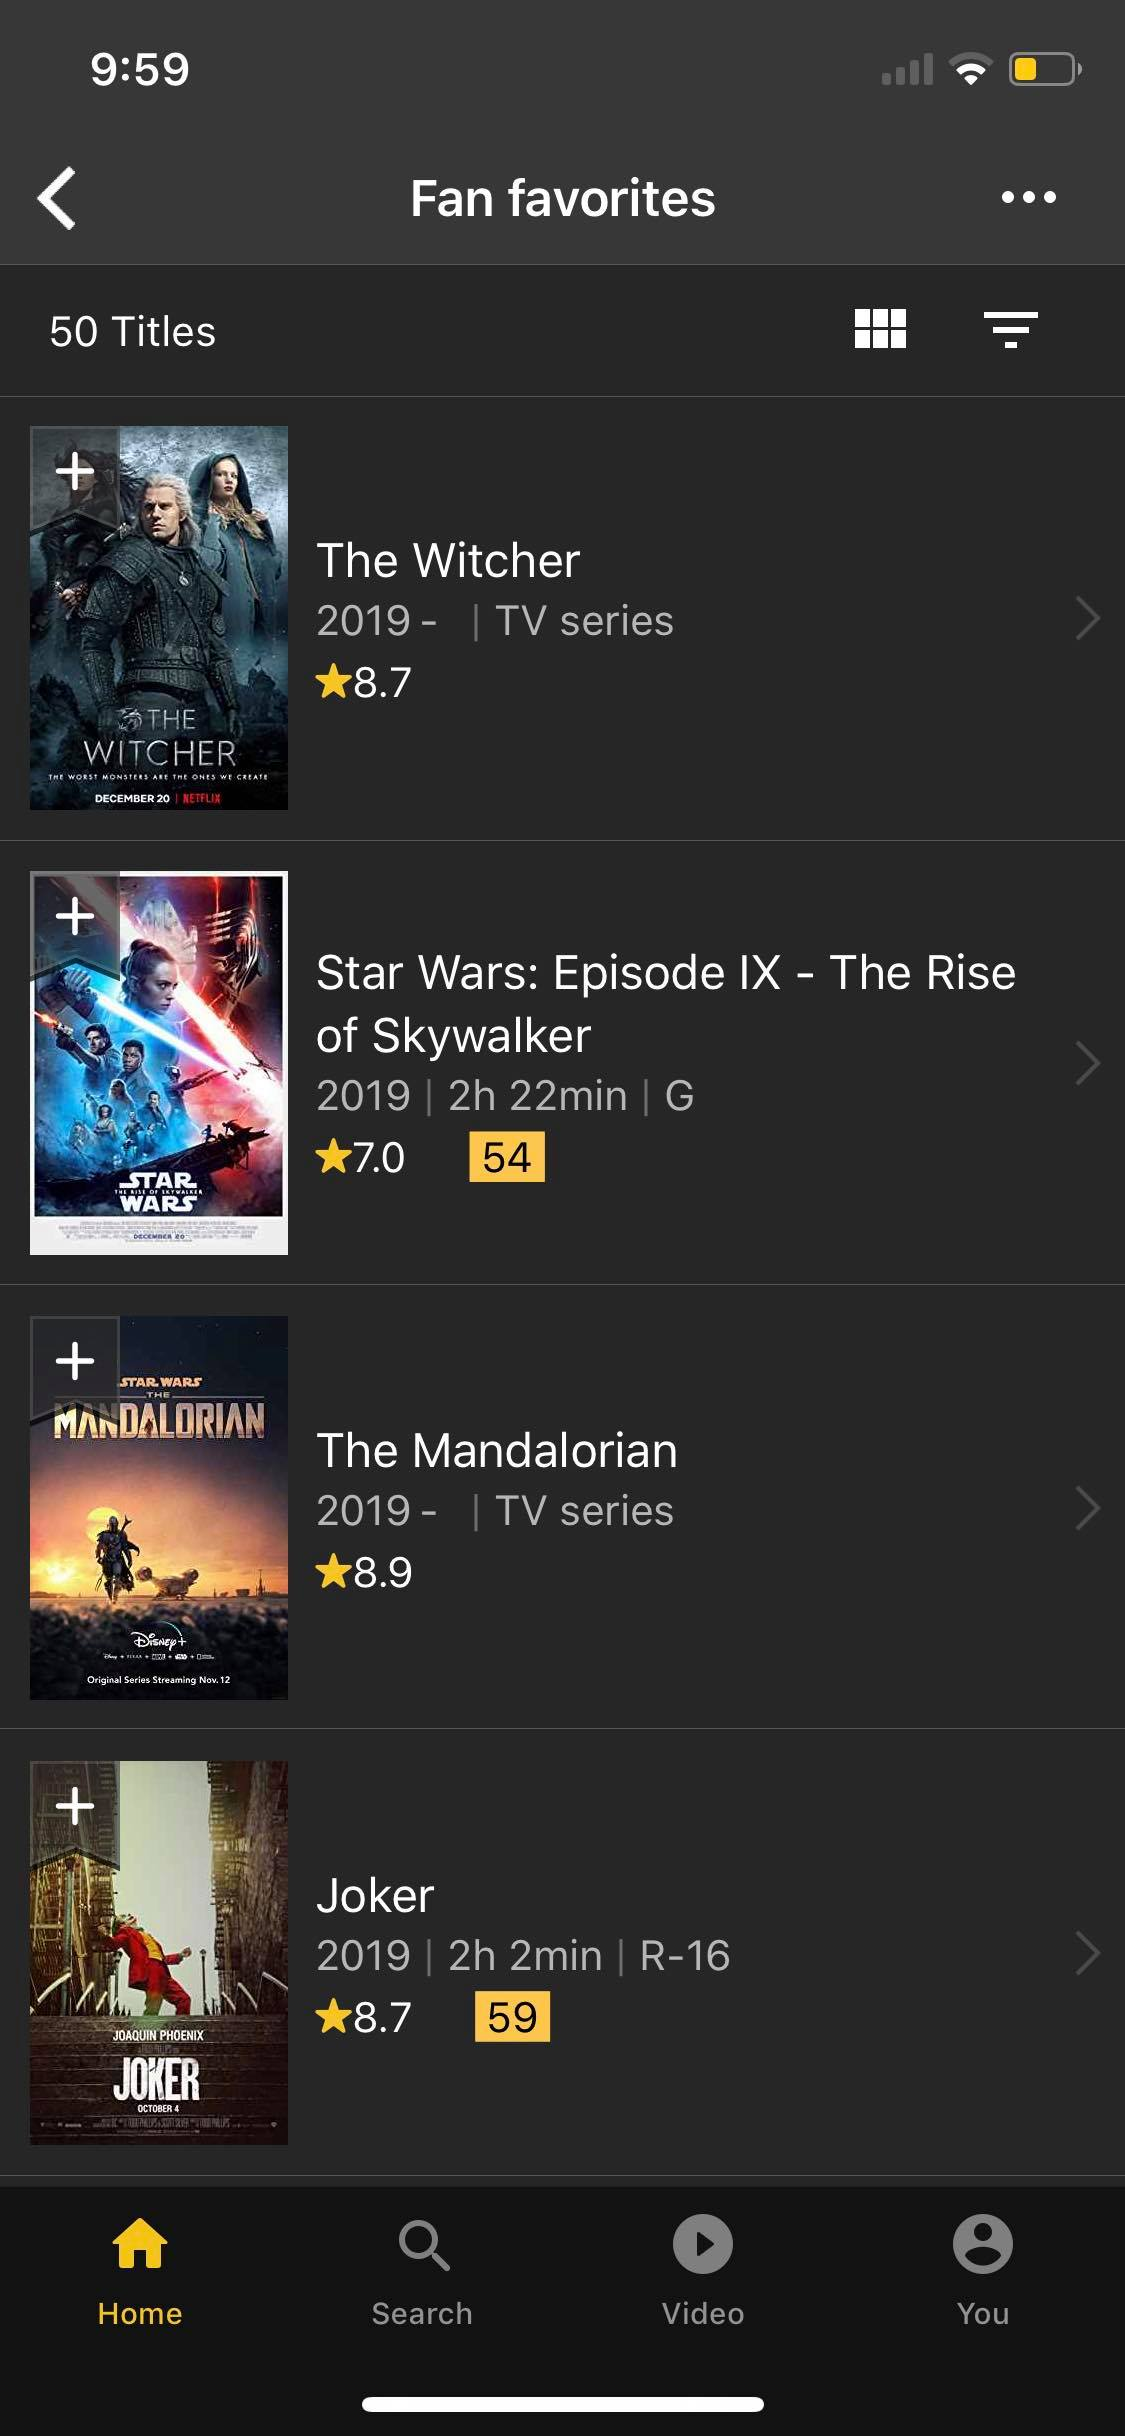 Fan Favorites on iOS by IMDb from UIGarage